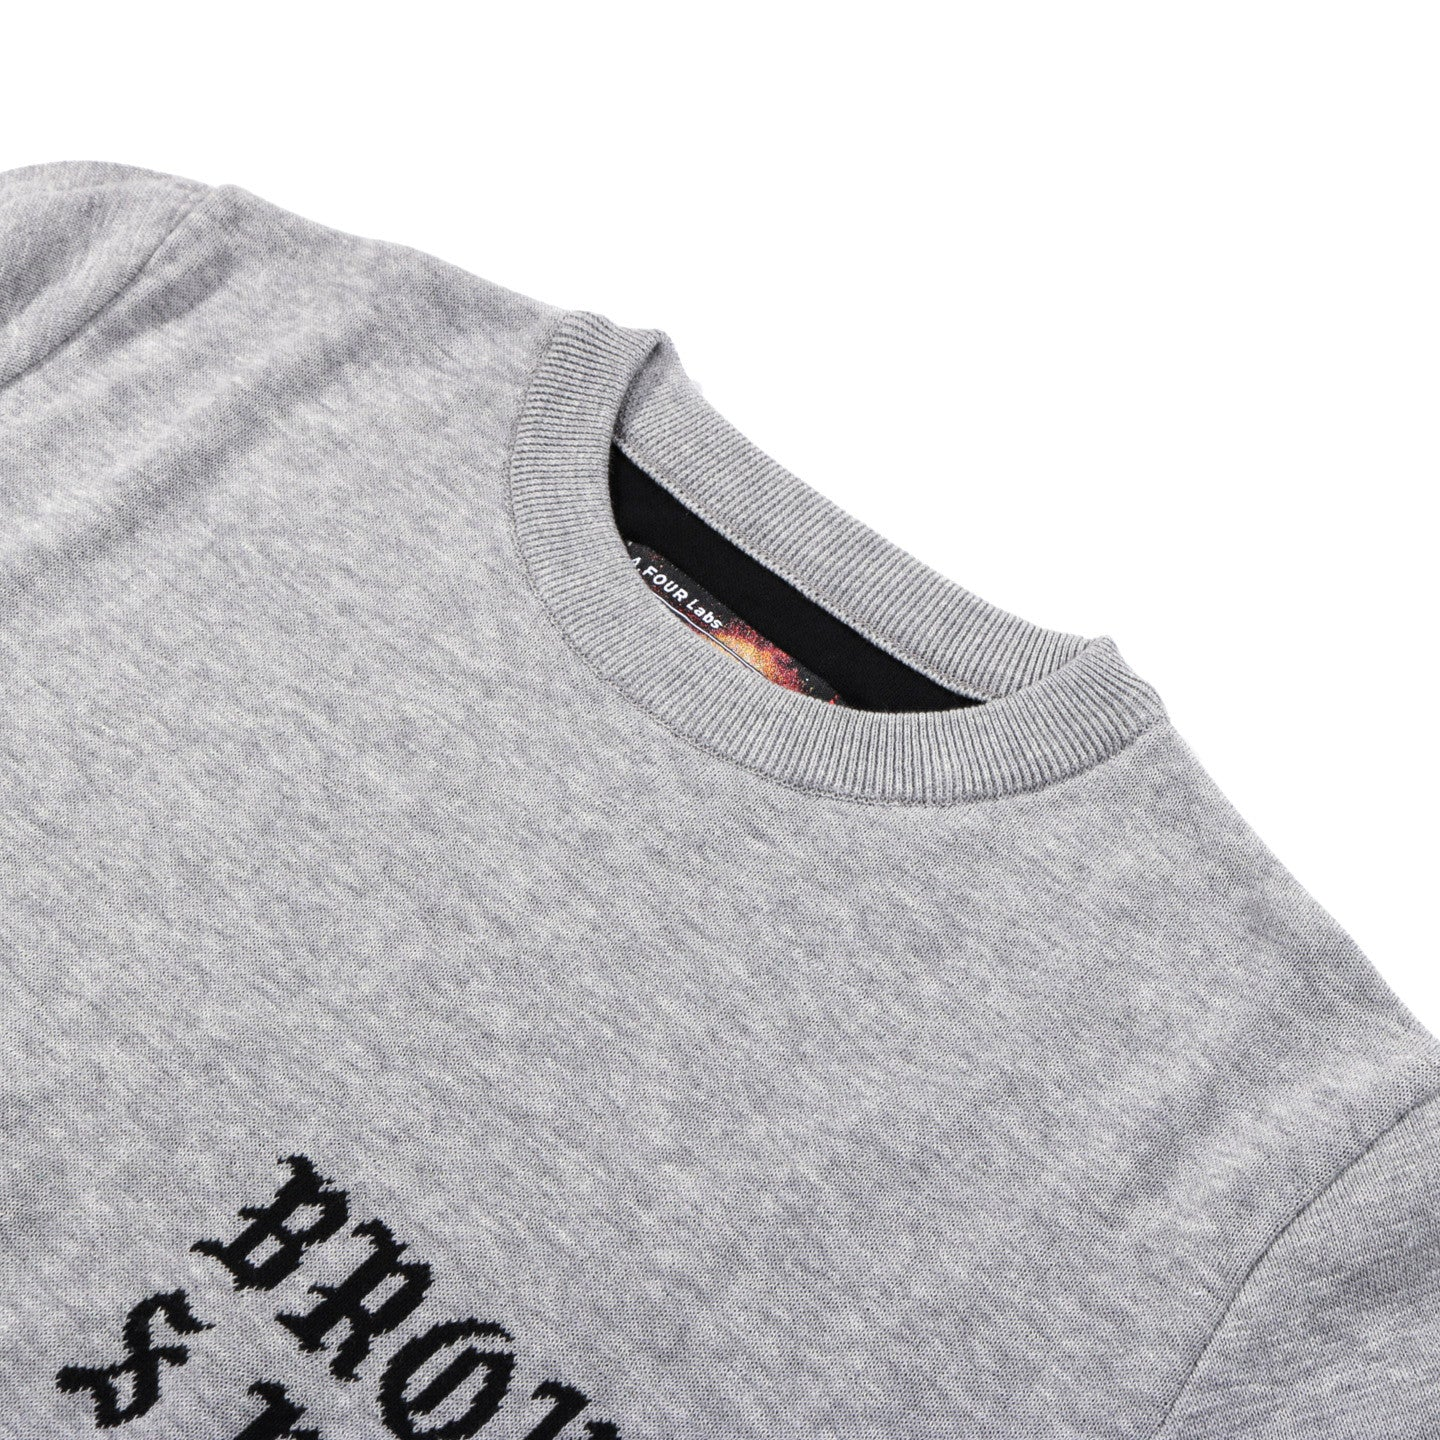 A.FOUR X CALI THORNHILL DEWITT TOMBSTONE SWEATER GREY